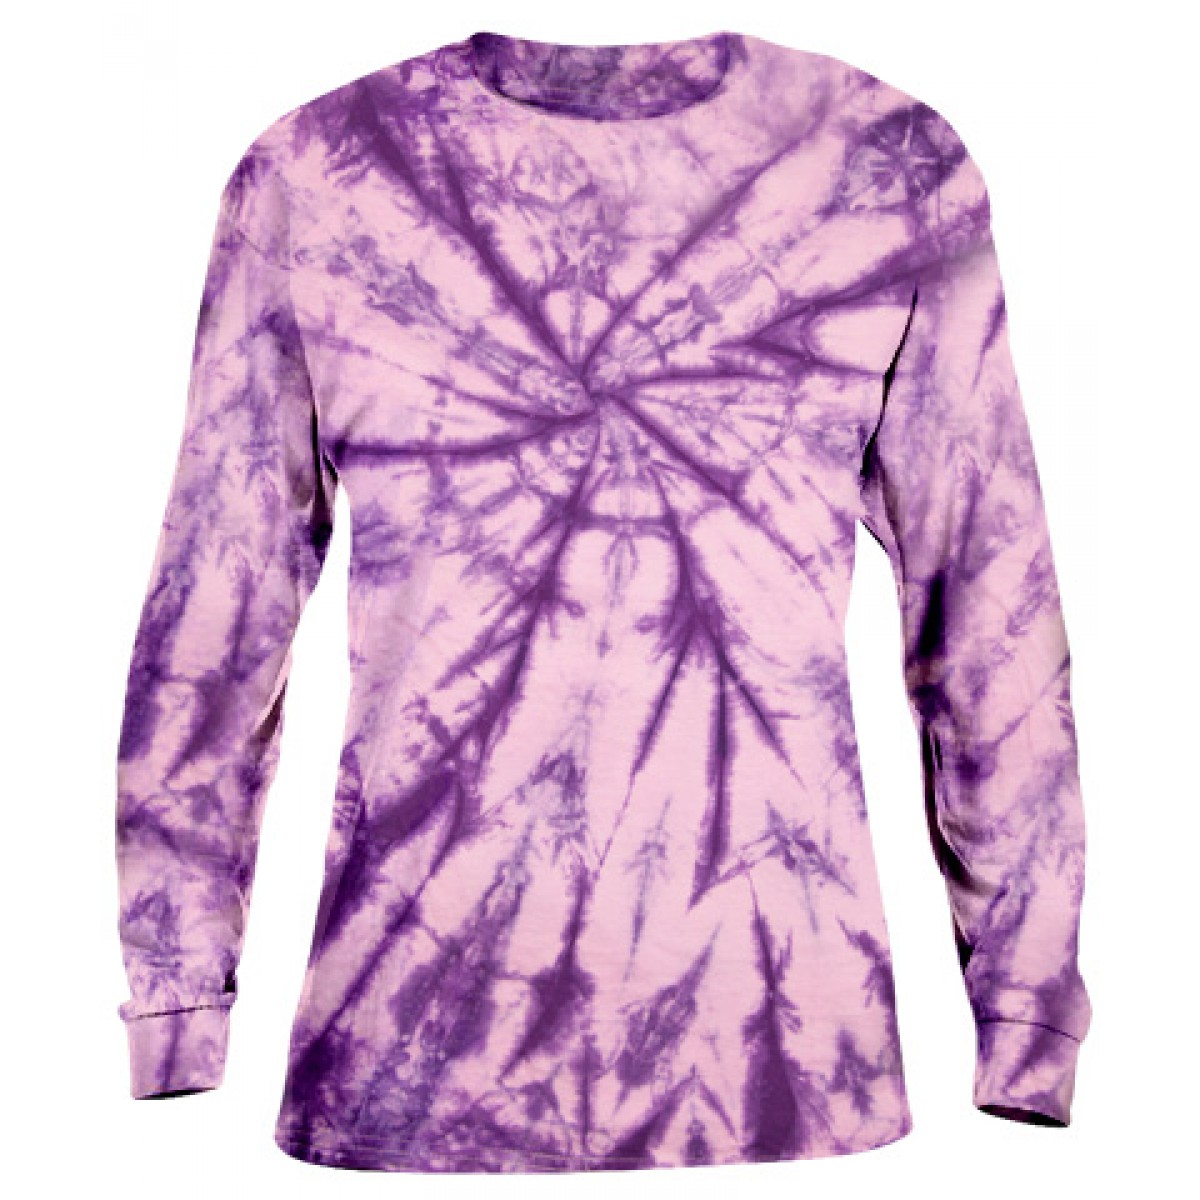 Tie-Dye Long Sleeve Shirt -Purple-M